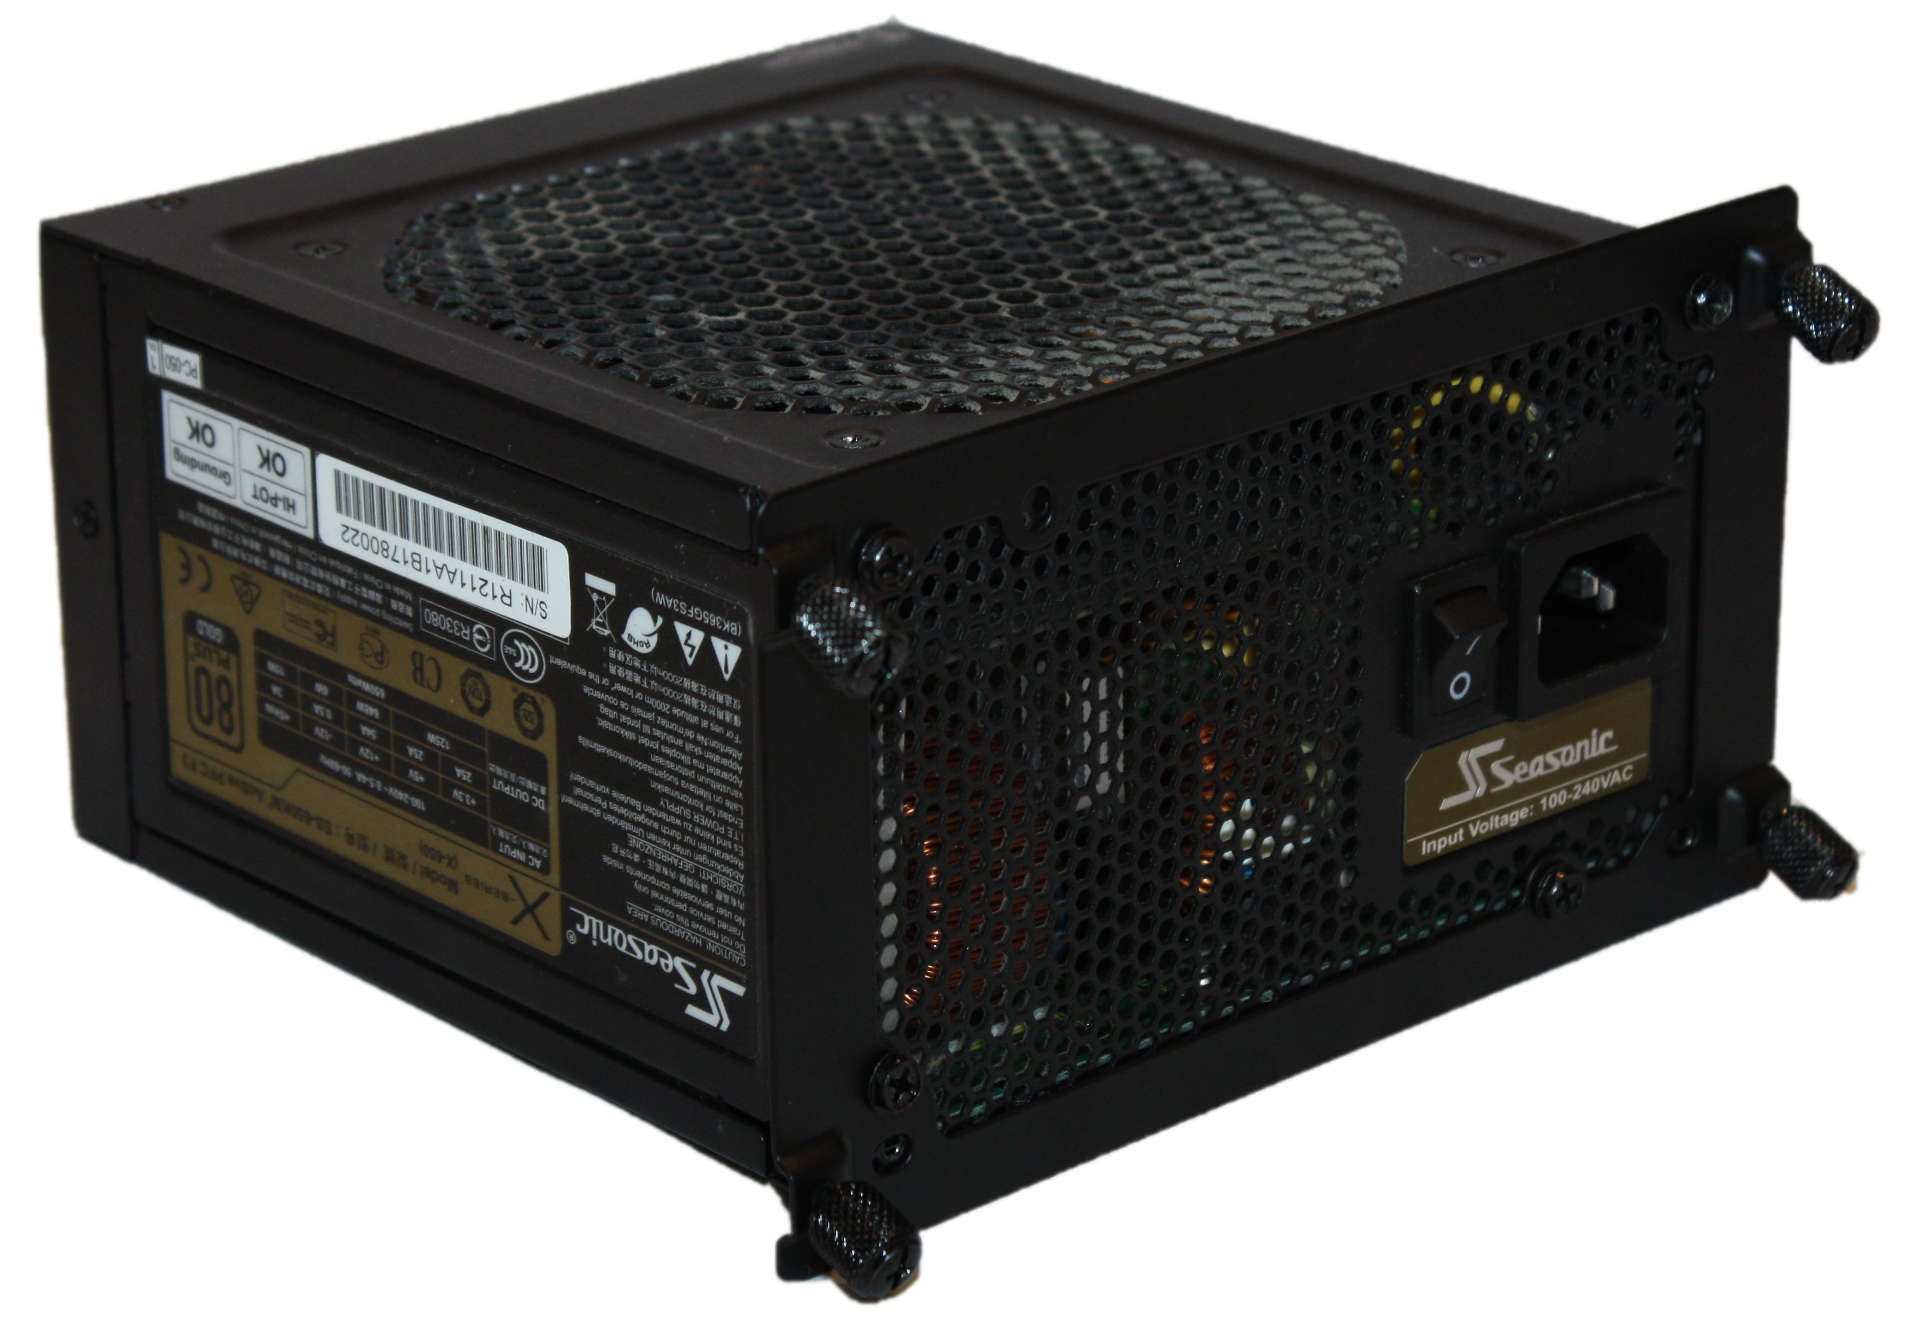 Ocn Labs Cooler Master Mastercase Pro 6 Review By William Gayde Simple Dc Power Supply Schematicpng Here Is The Build I Put Together For This Case You Can See Nothing Cramped And Nearly All Cables Are Out Of Sight Basement Still Somewhat